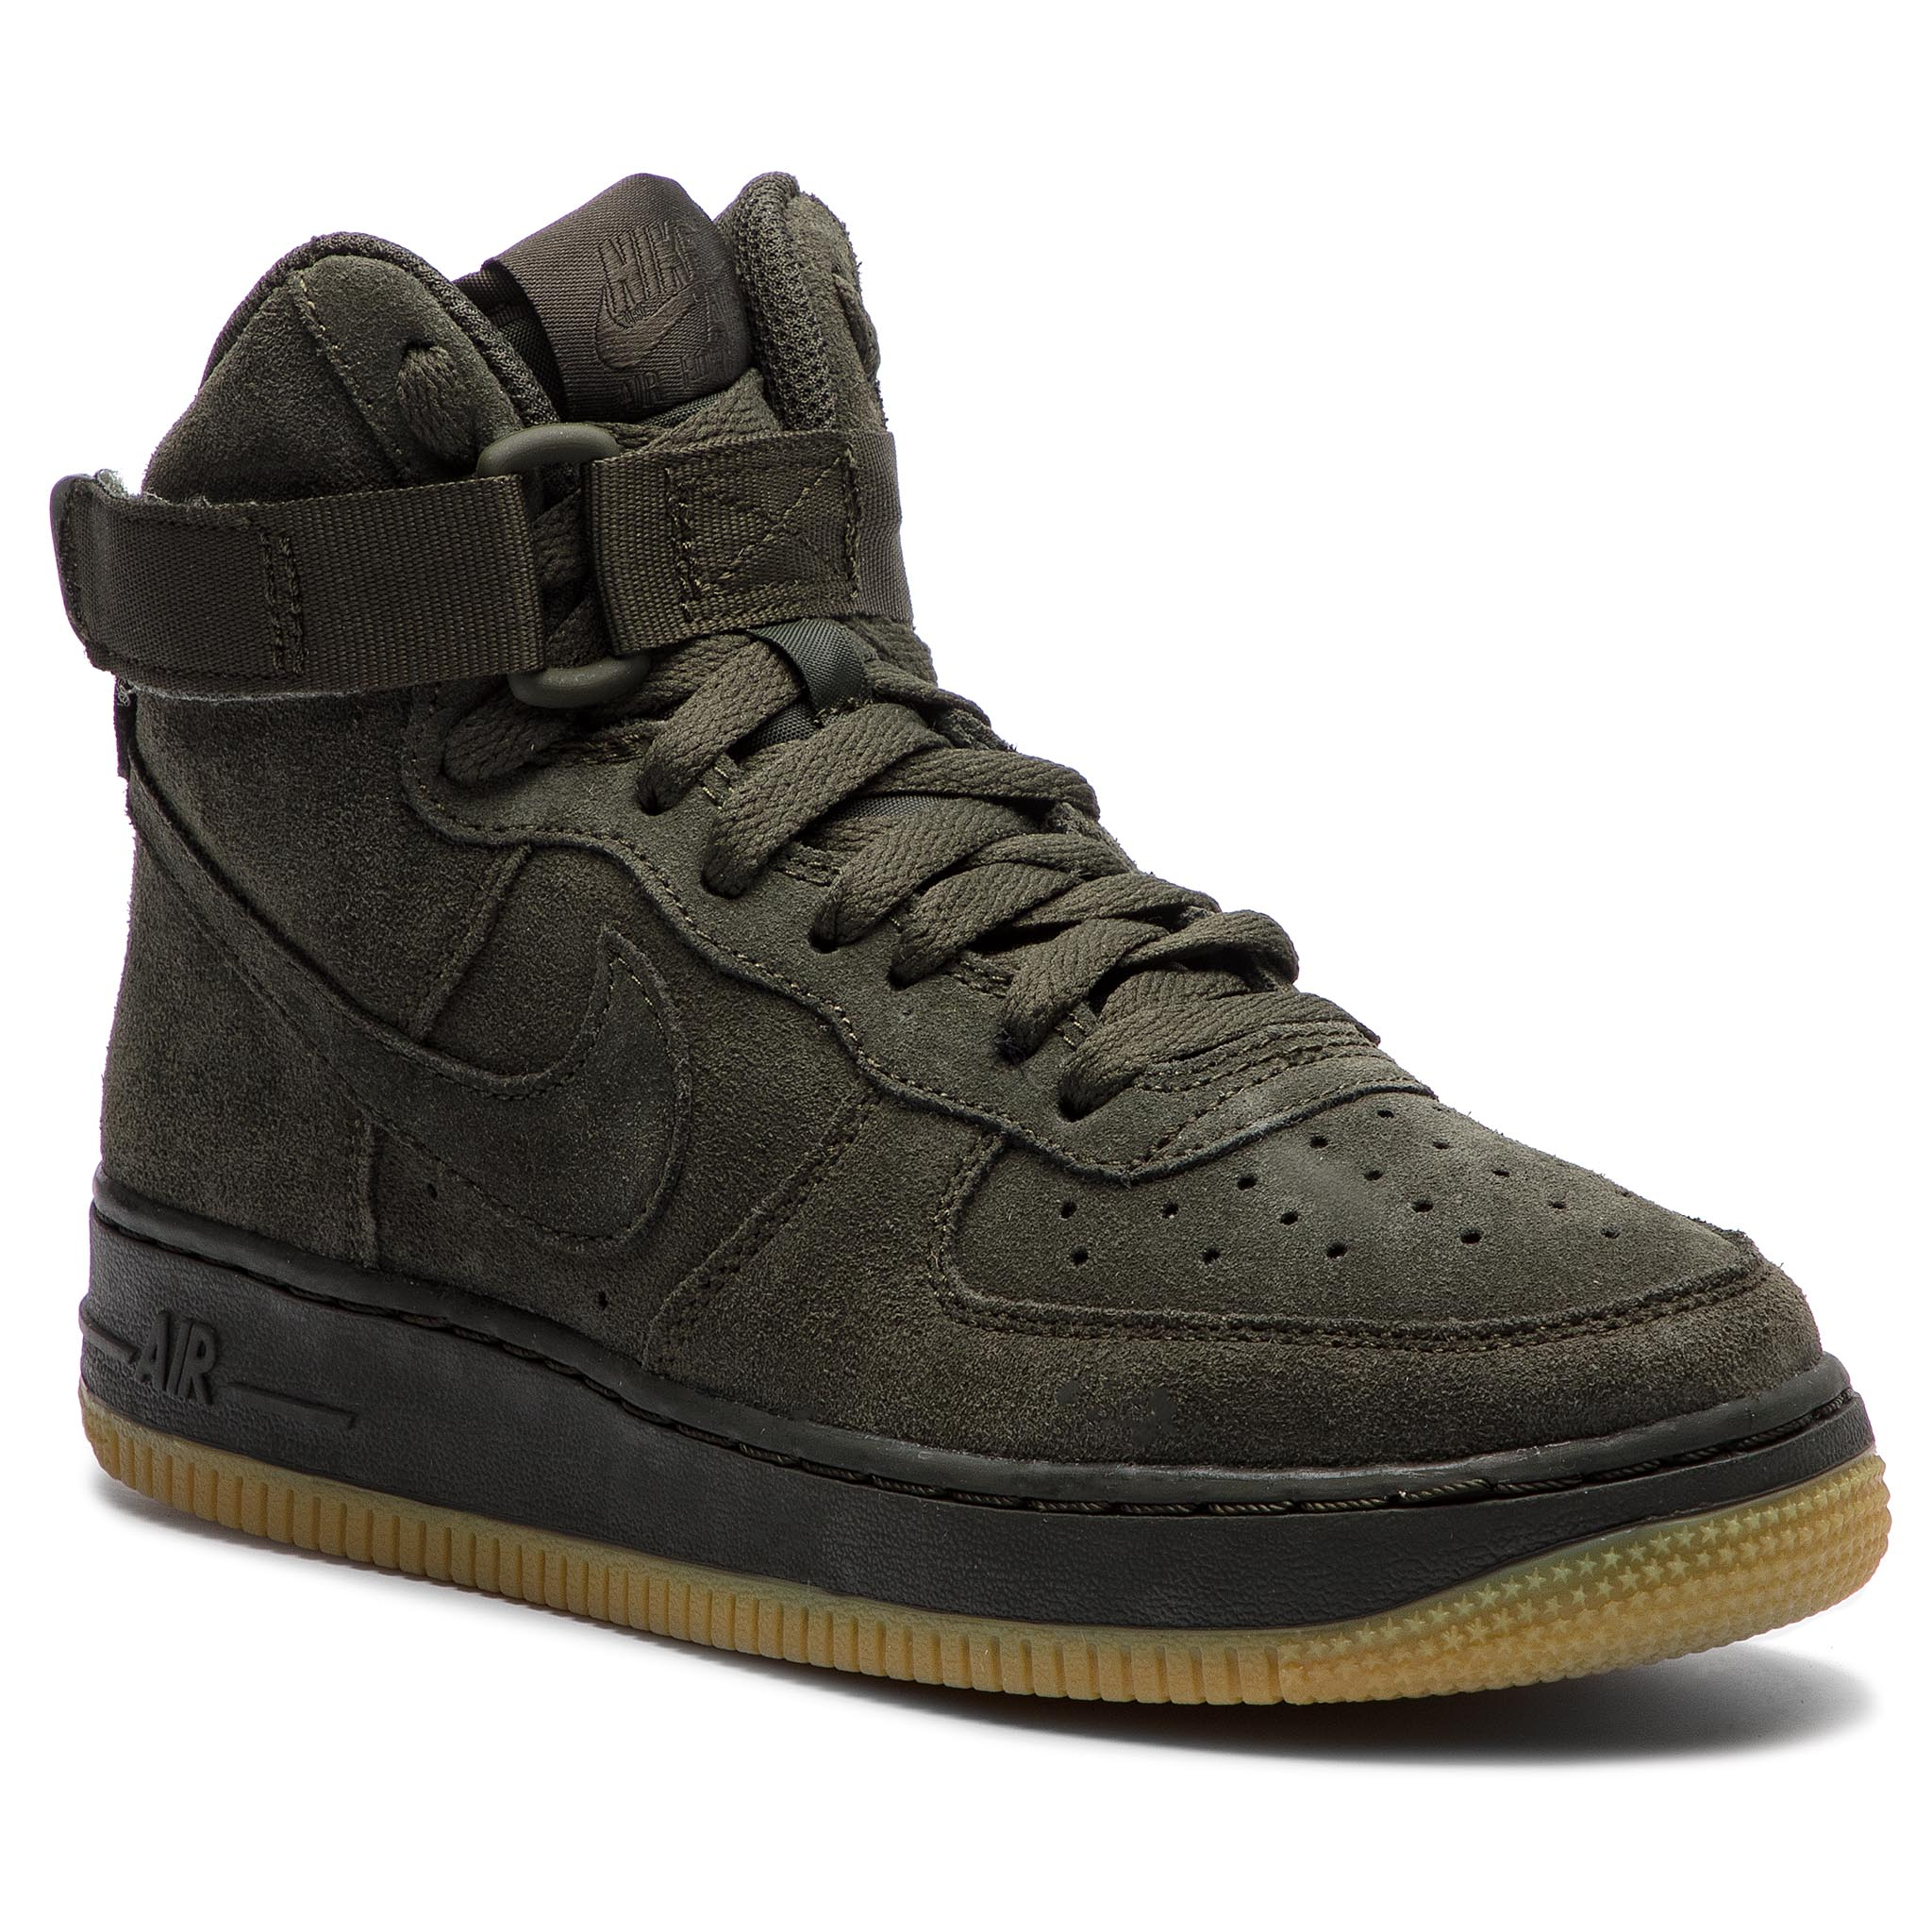 new style 00631 b43d3 Shoes NIKE Air Force 1 High Lv8 (GS) 807617 300 Sequoia Sequoia